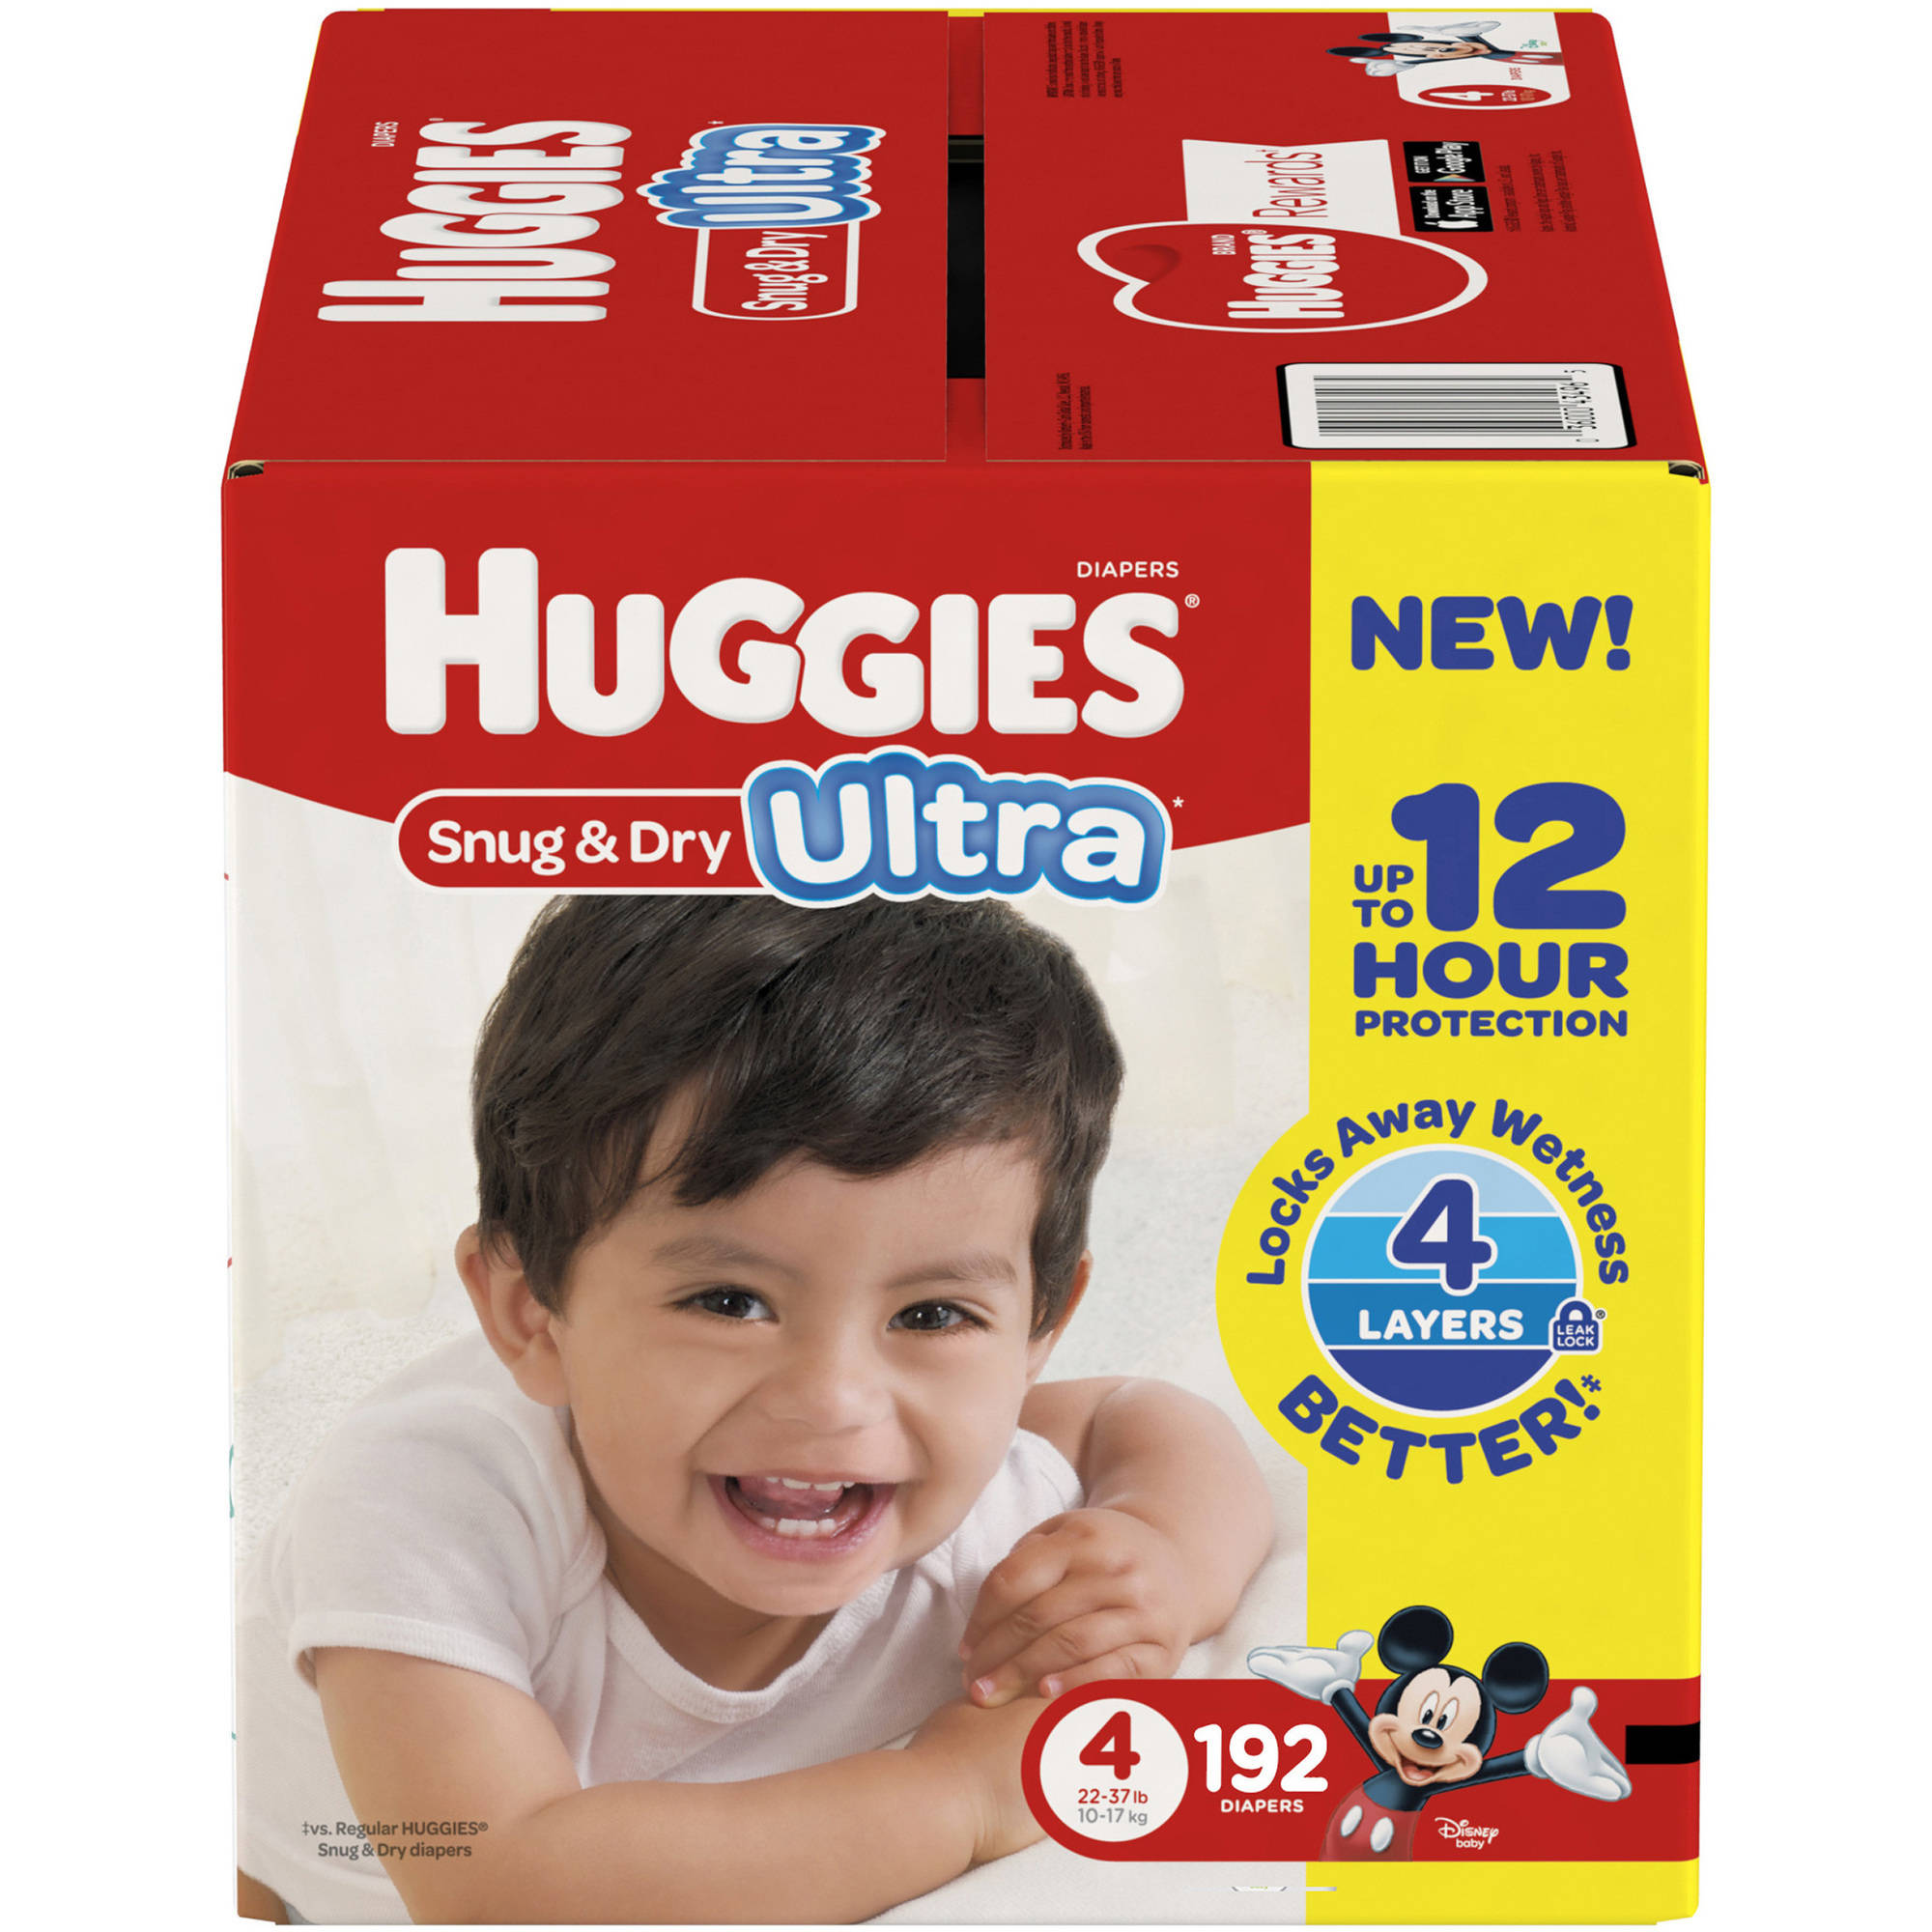 HUGGIES Snug & Dry Ultra, (Choose Diaper Size and Count)